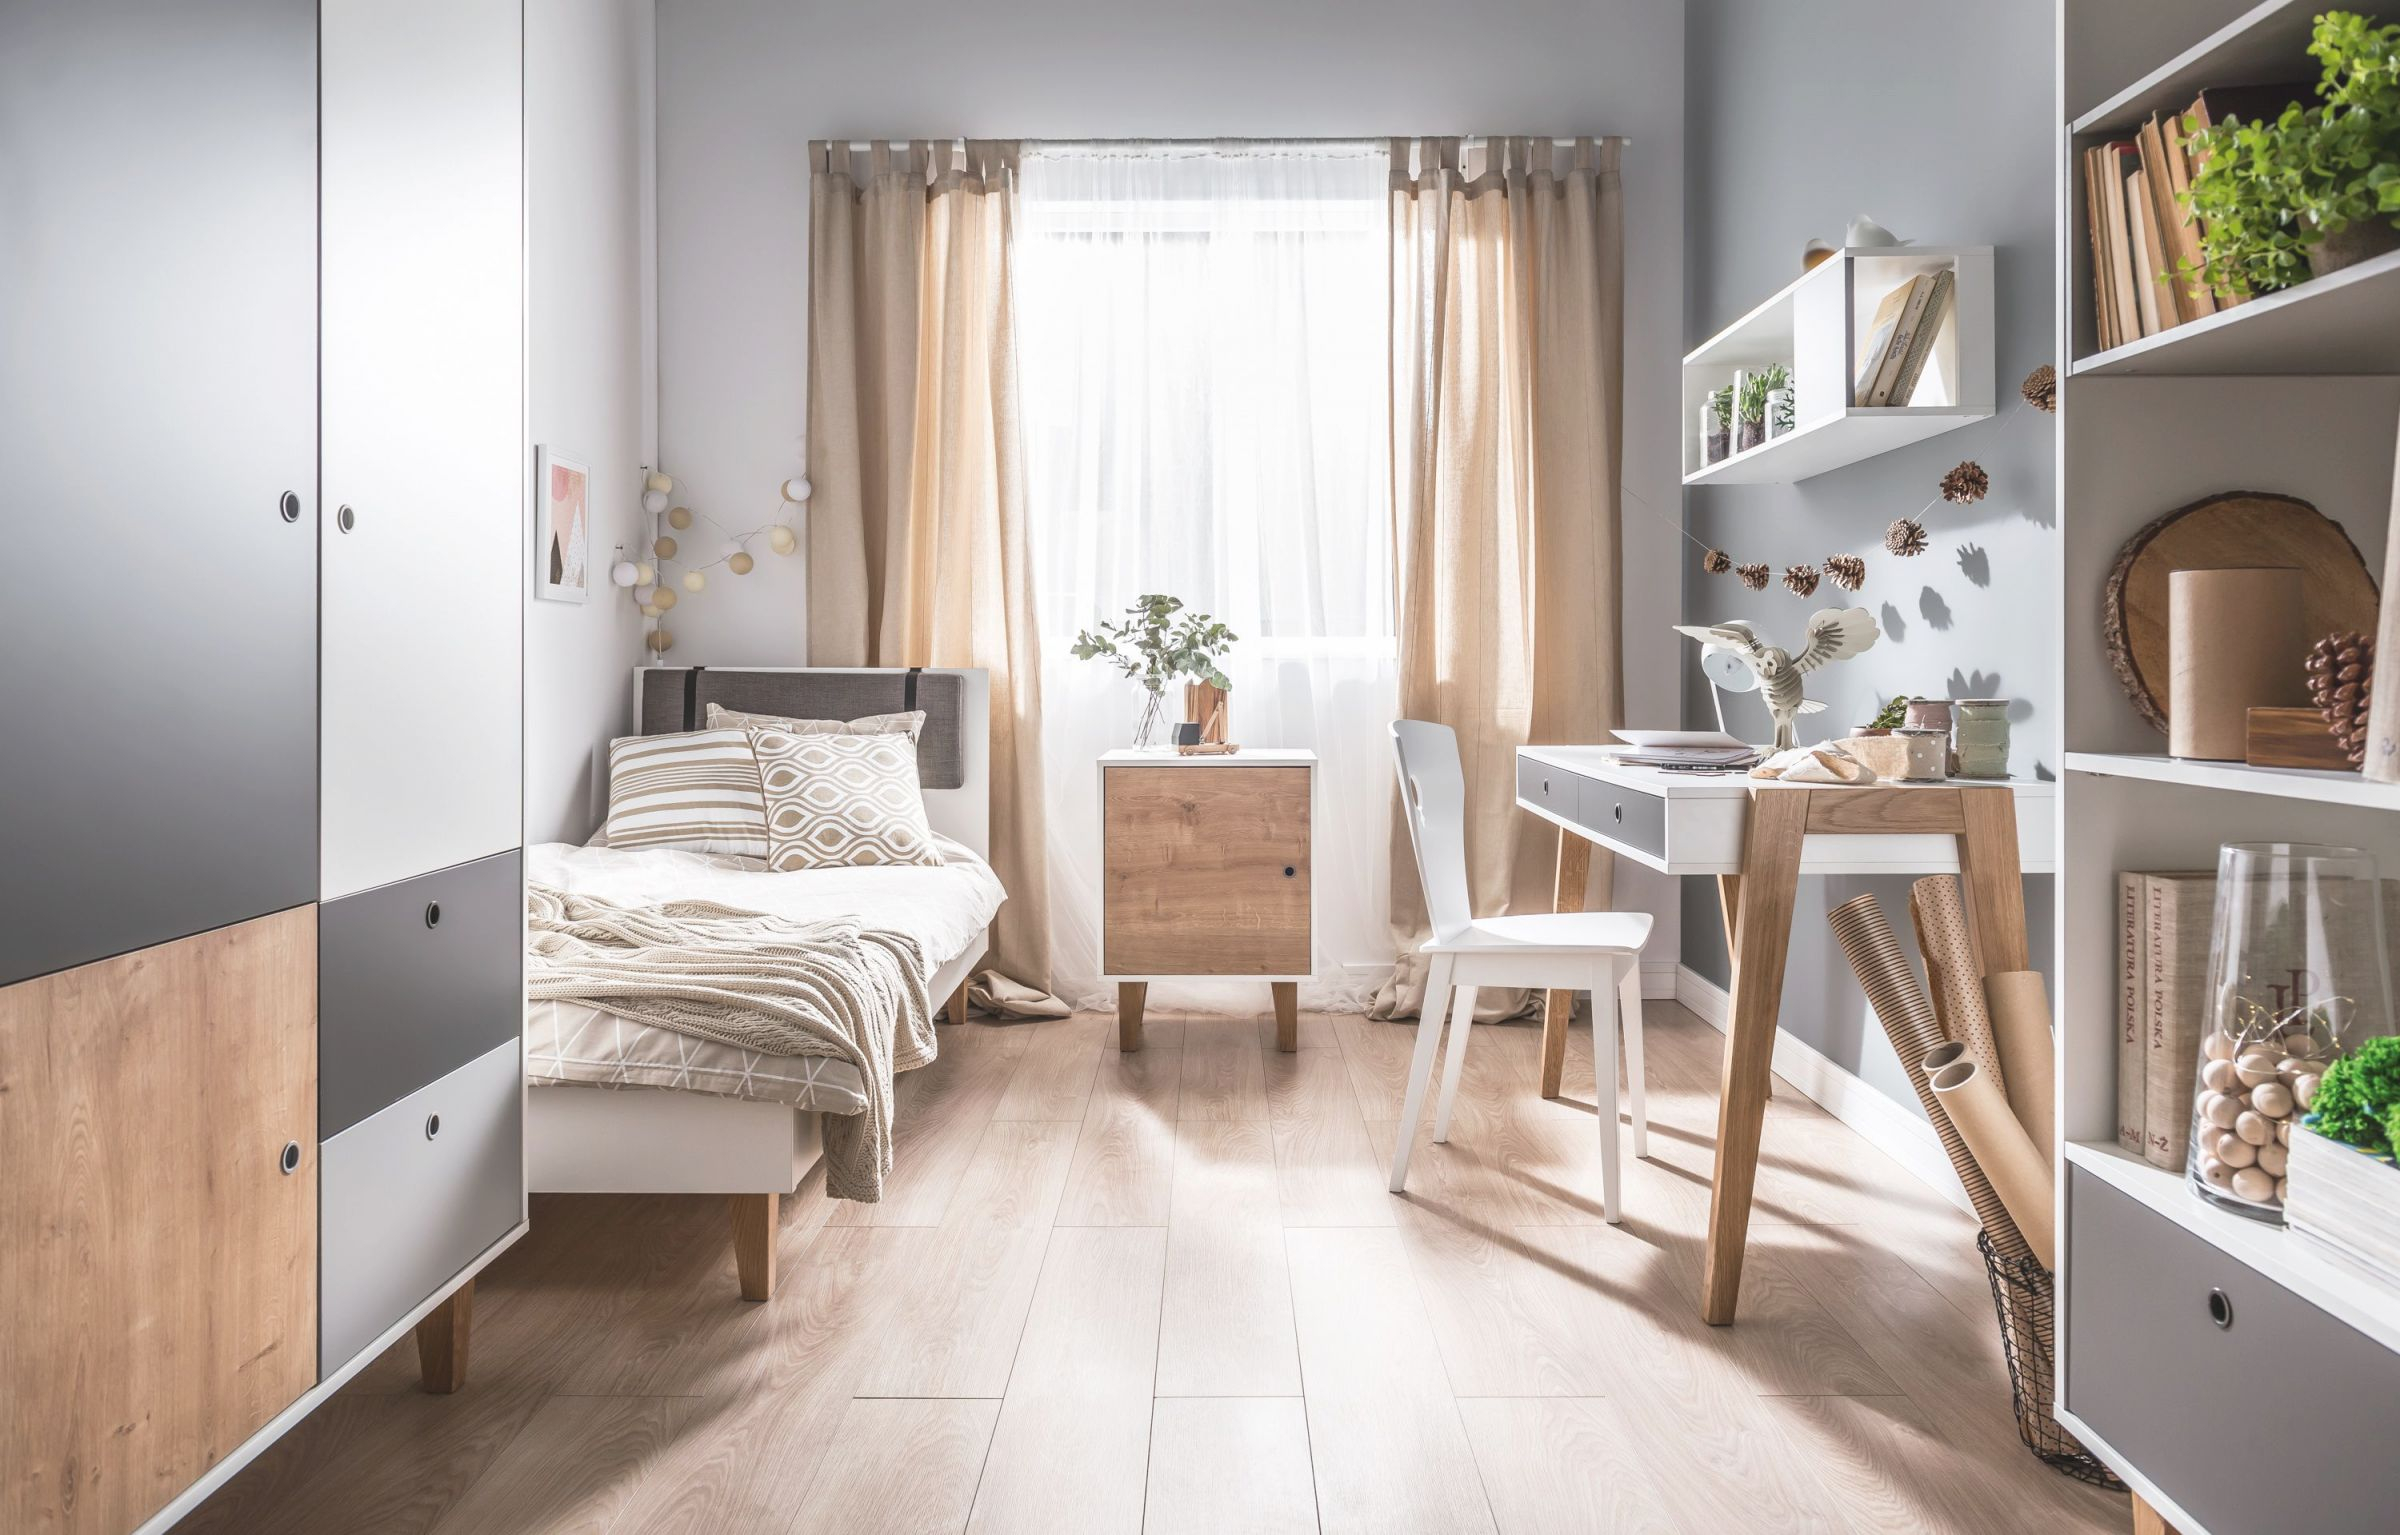 18 Small Bedroom Ideas To Fall In Love With – Small Bedroom throughout Decorating Ideas For Small Bedroom